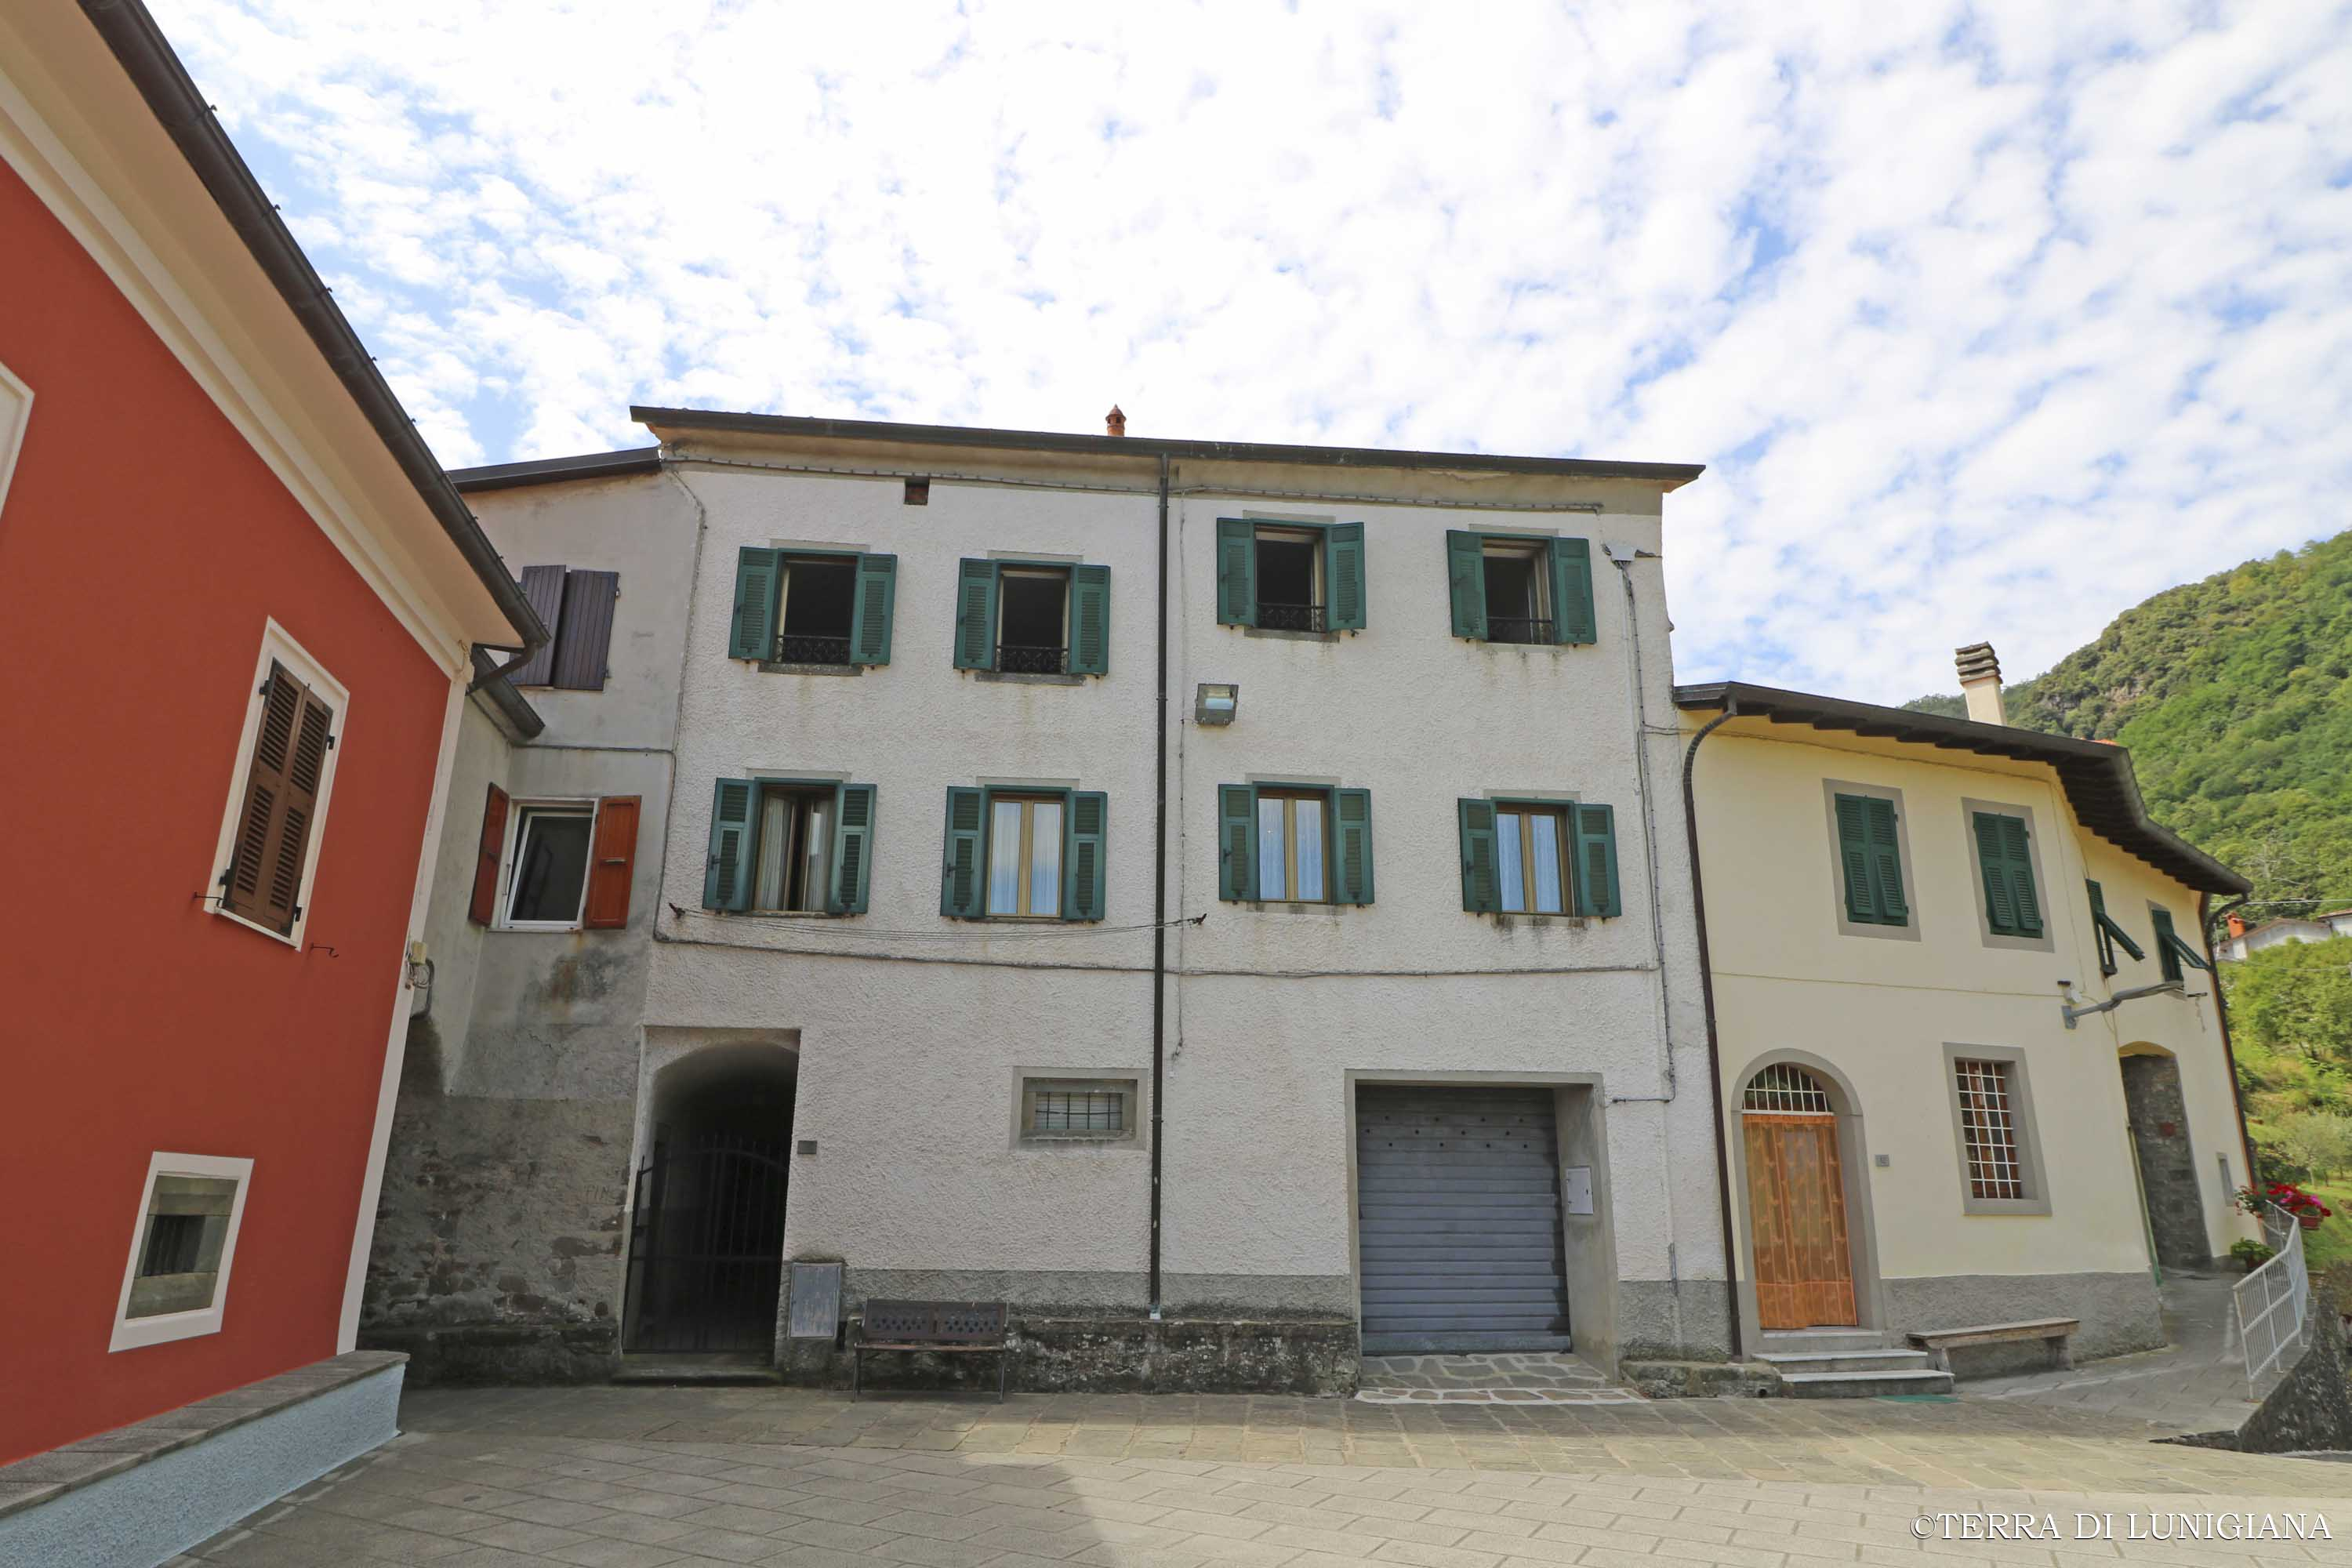 LA NUVOLA – House with Cellars and Panoramic View